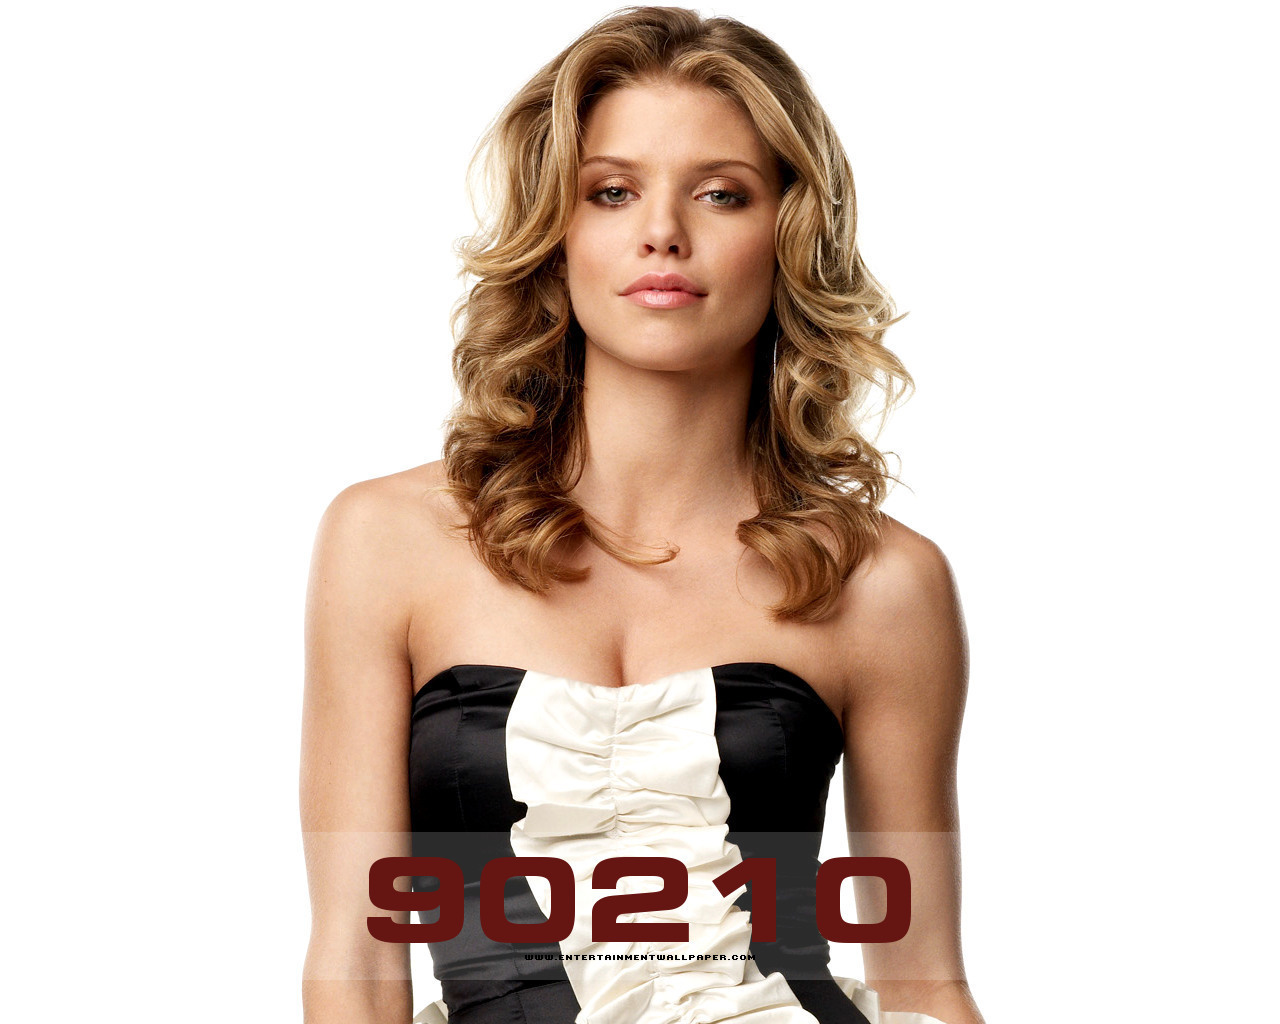 http://images2.fanpop.com/images/photos/6300000/AnnaLynne-wallpaper-annalynne-mccord-6379003-1280-1024.jpg